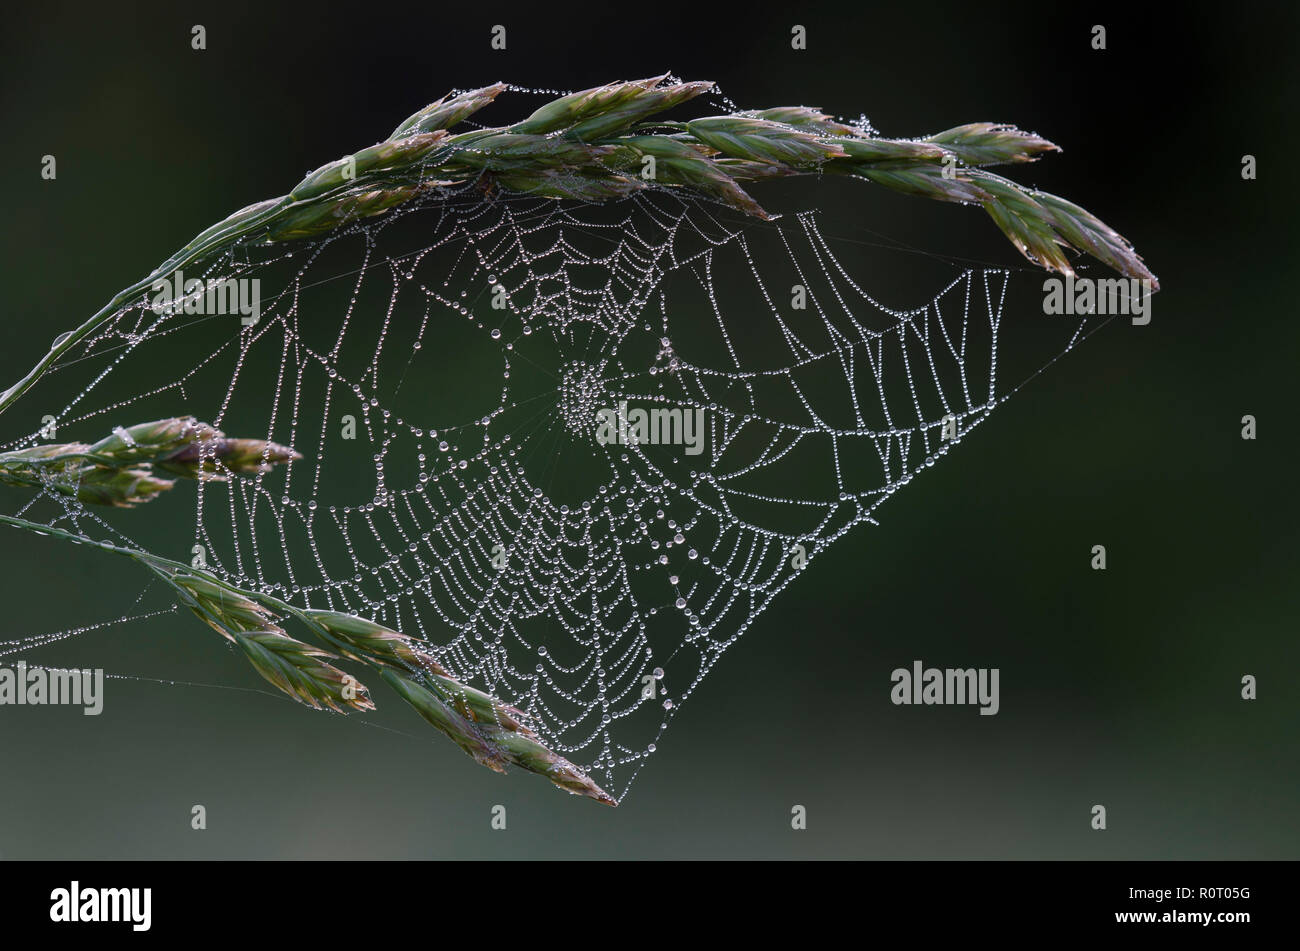 Orb web with dew - Stock Image